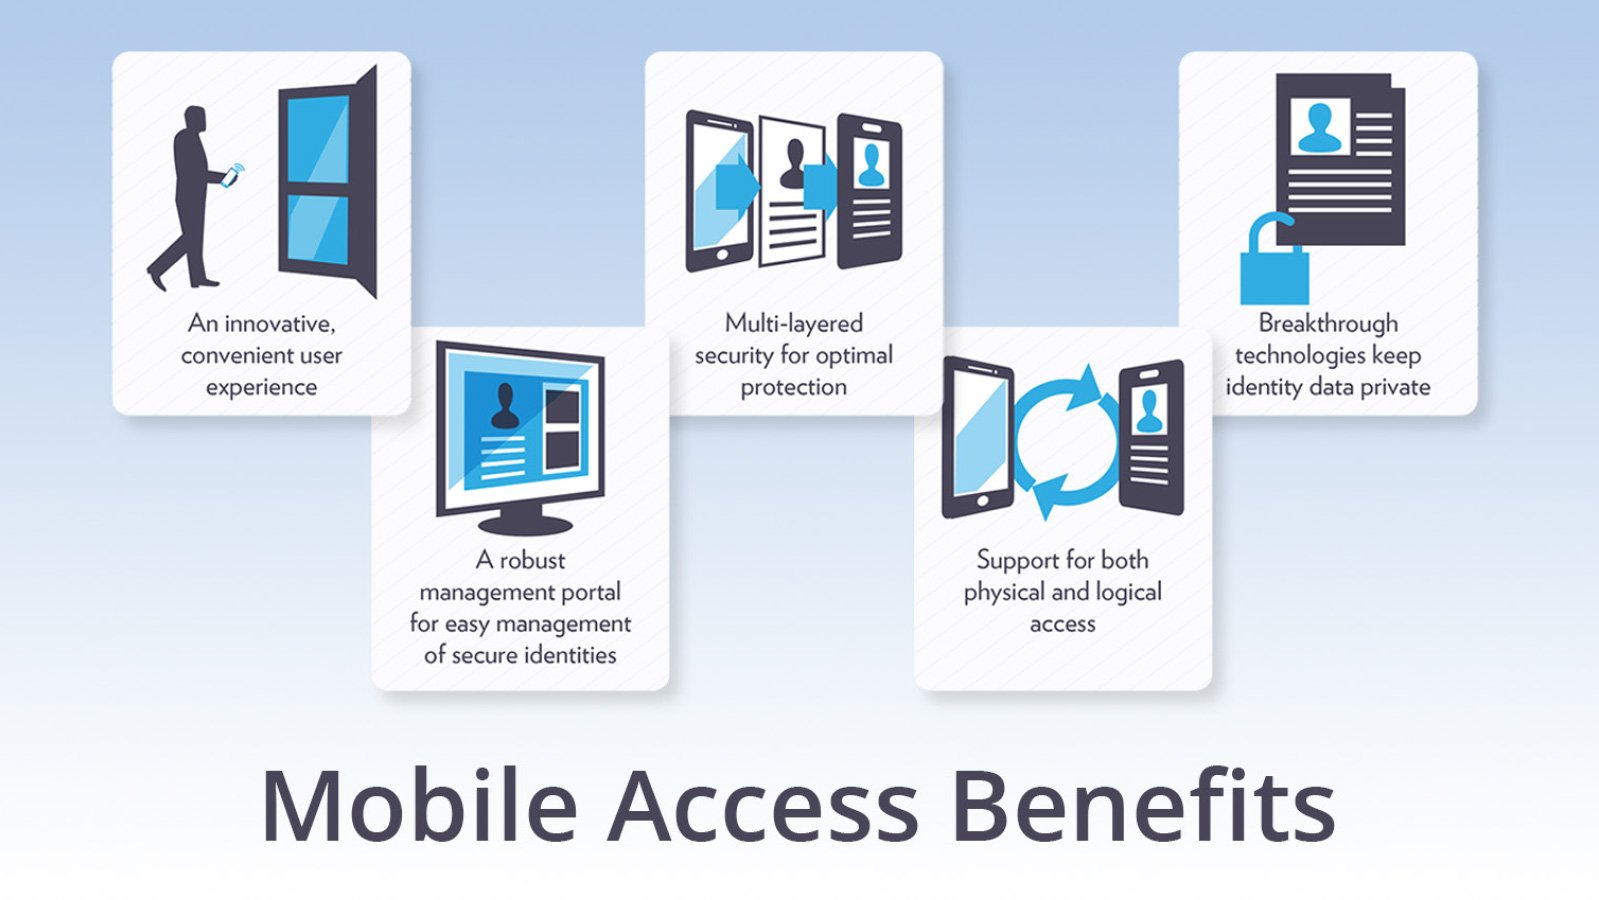 Mobile Access Benefits Chart